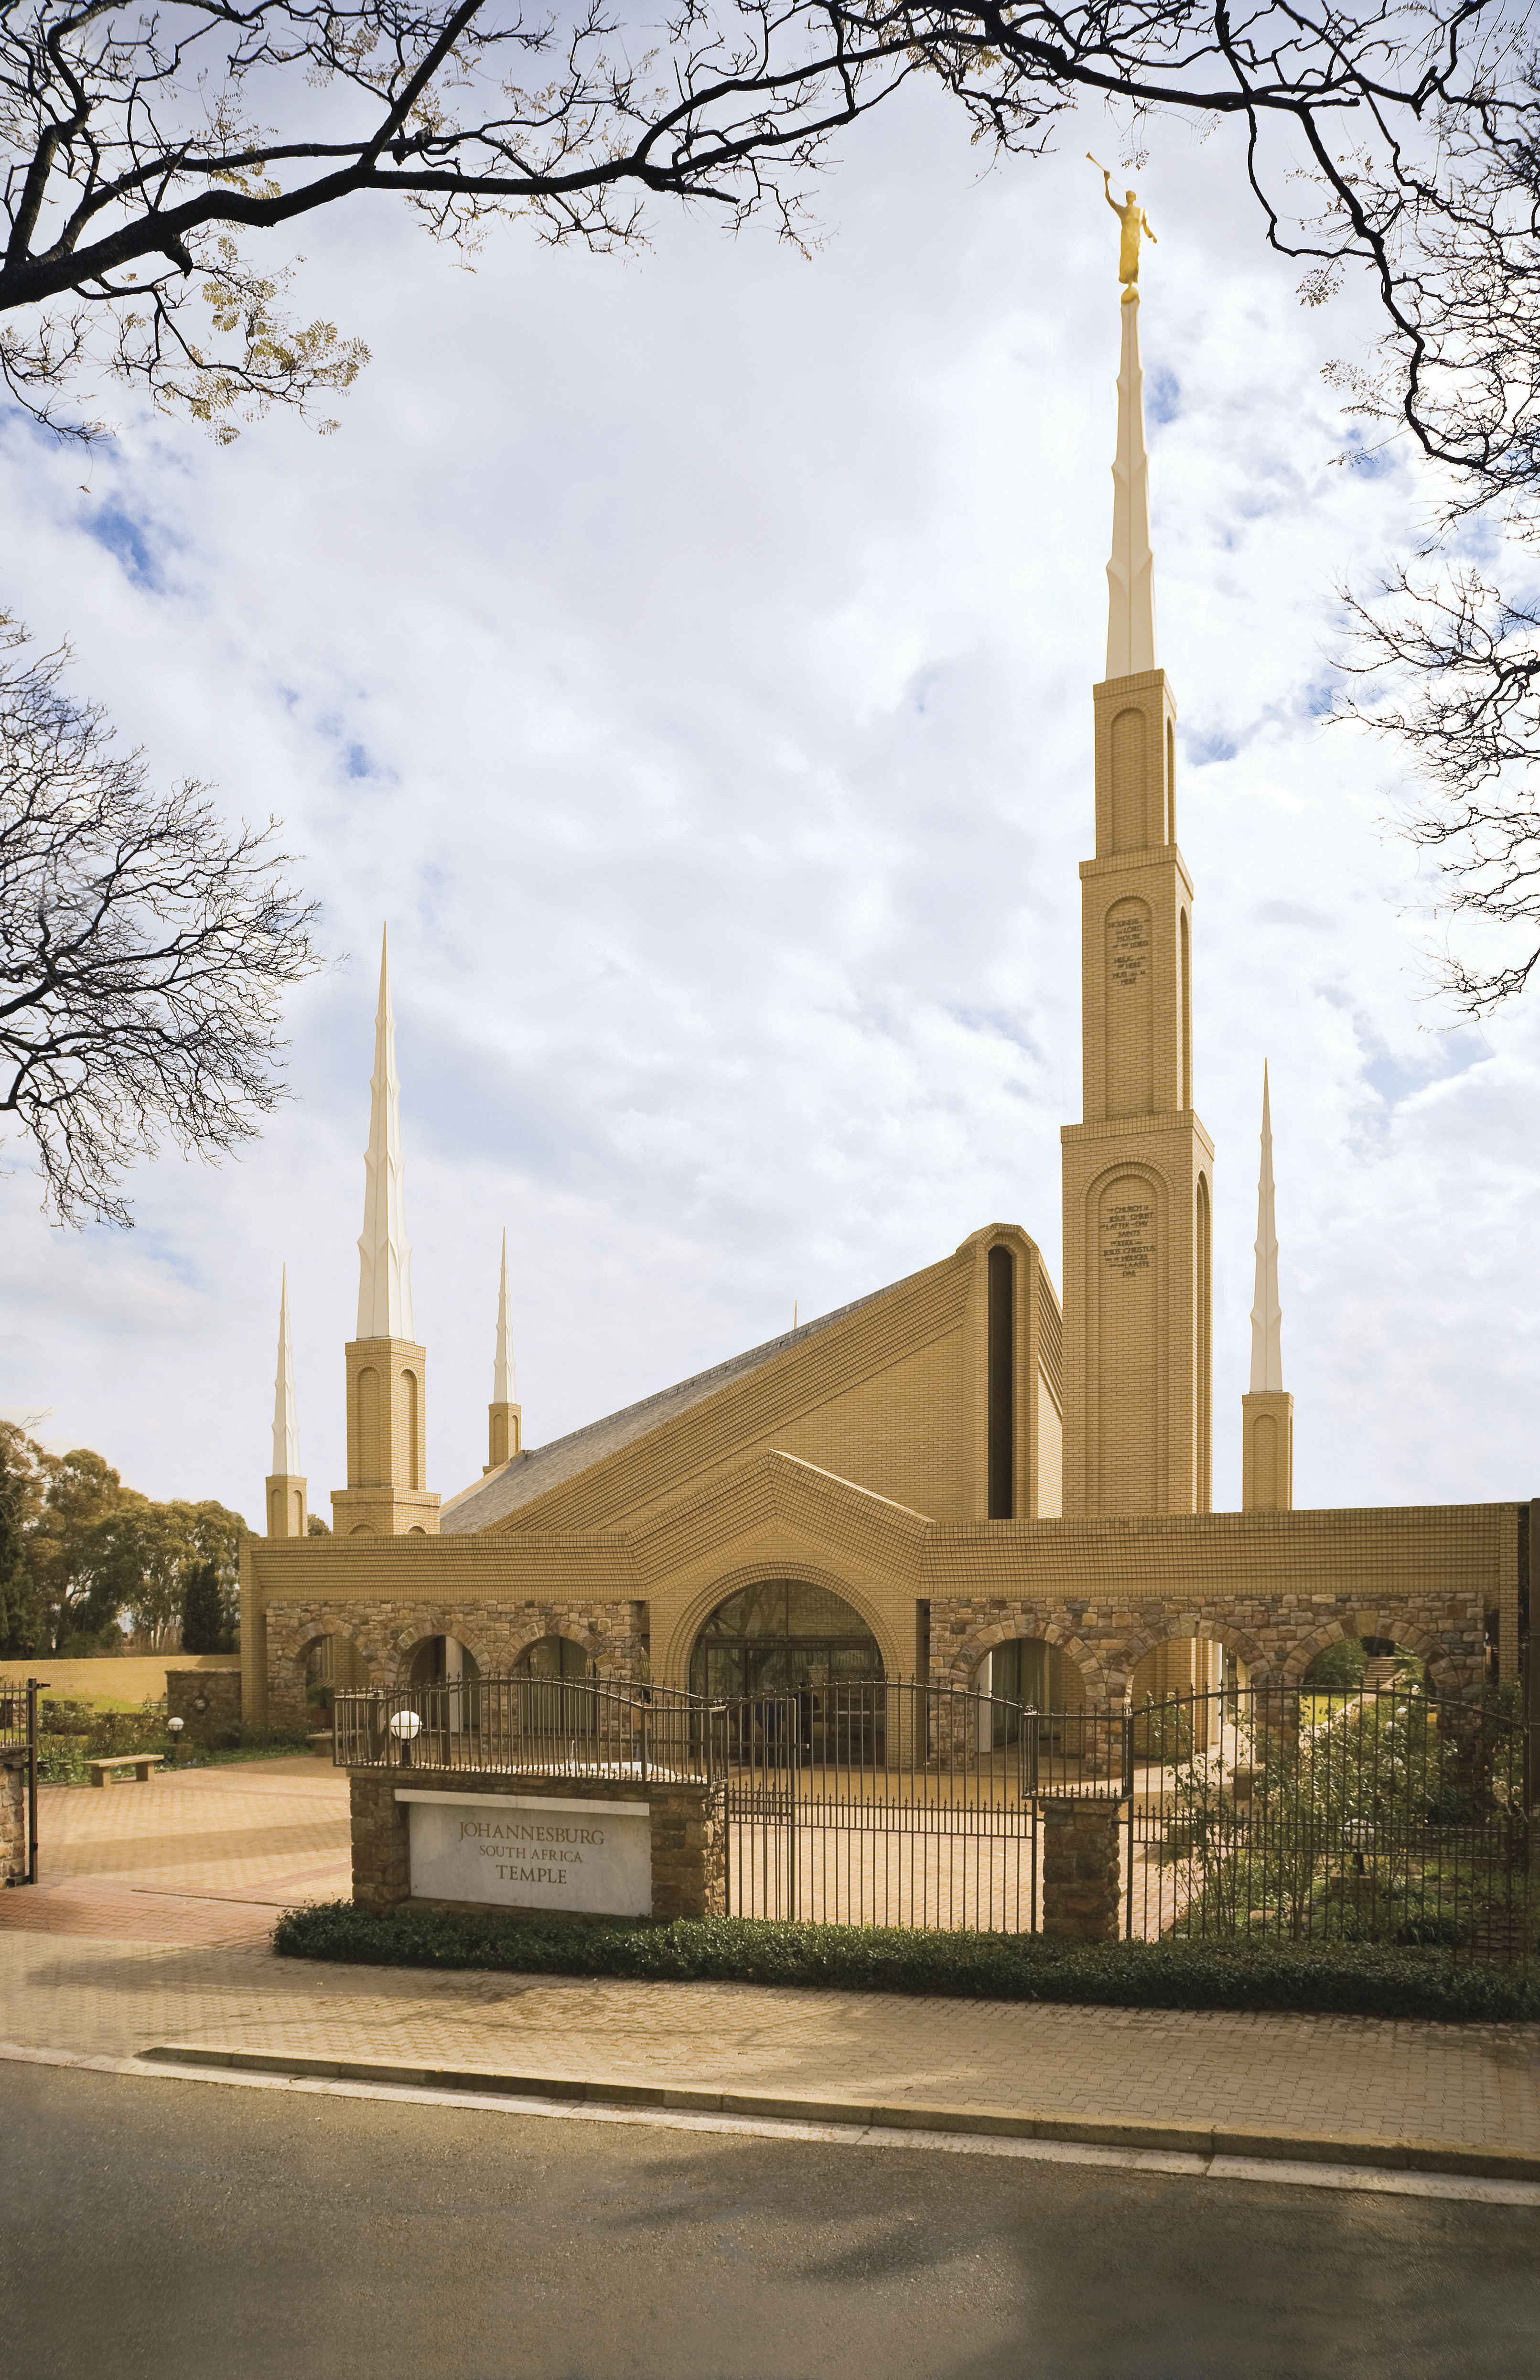 A view of the Johannesburg South Africa Temple, including the name sign, entrance, and landscaping.